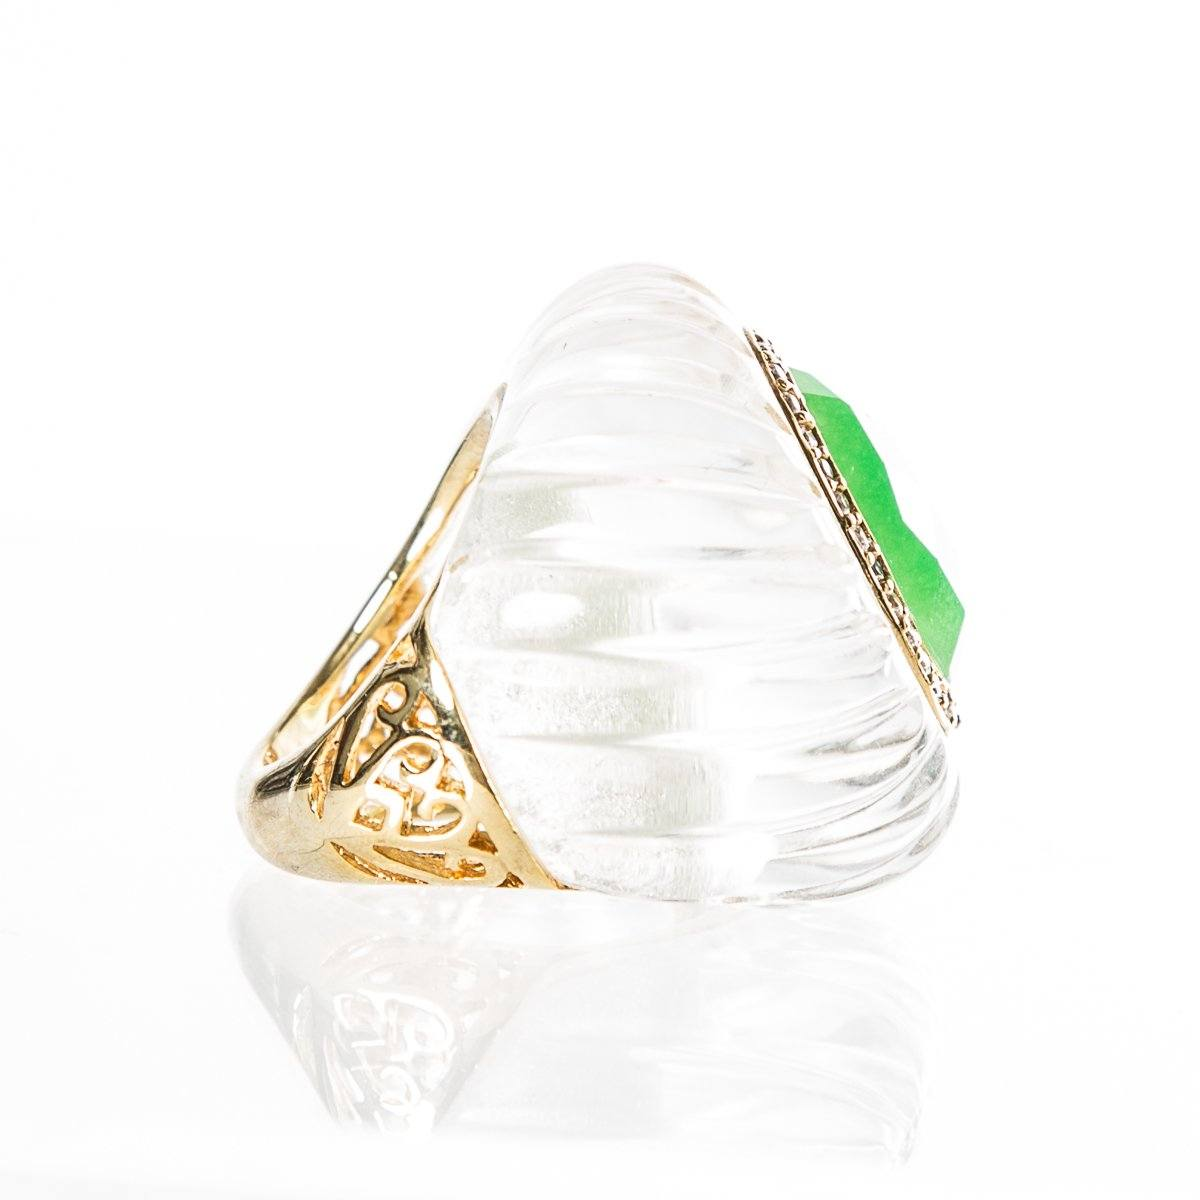 Angelique De Paris Clear Resin & Green Crystal Ring